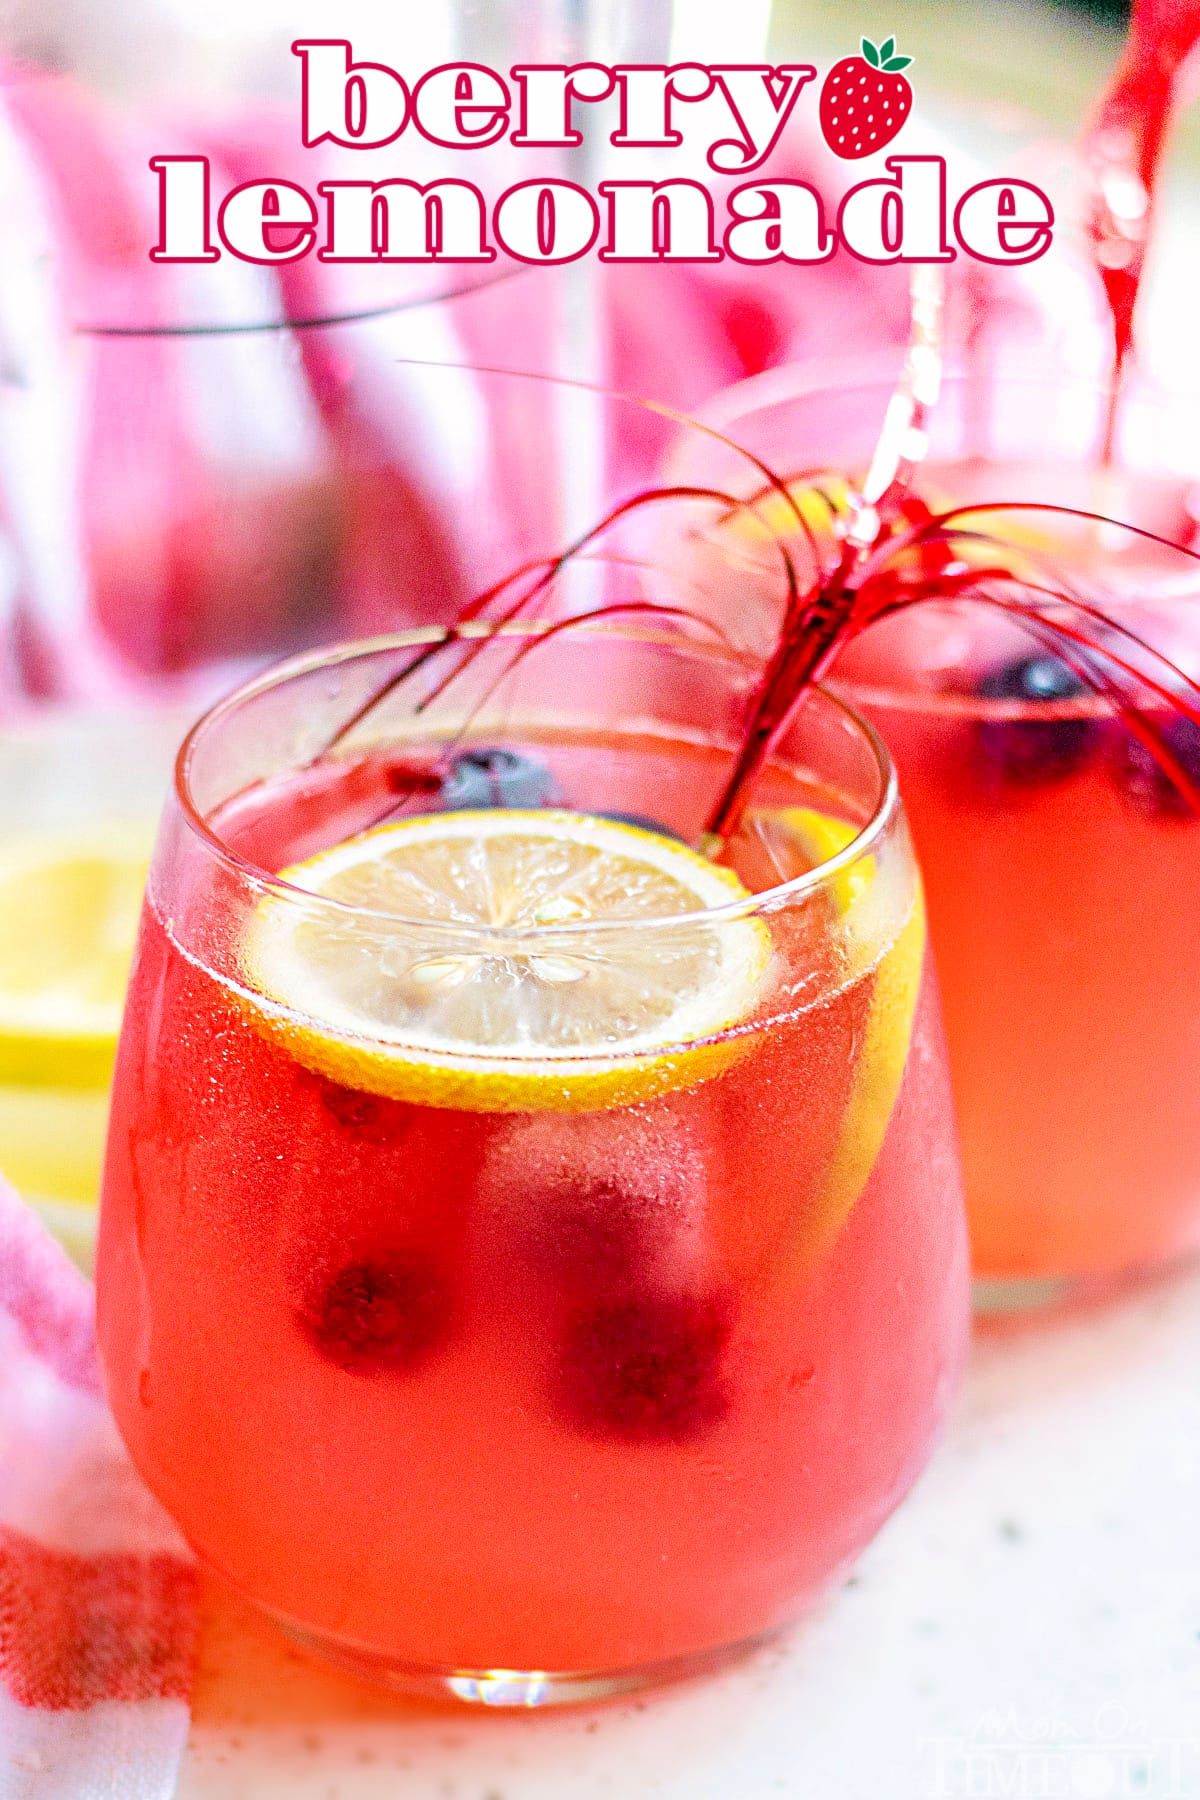 berry lemonade in a wine glass garnished with lemon slices with title overlay